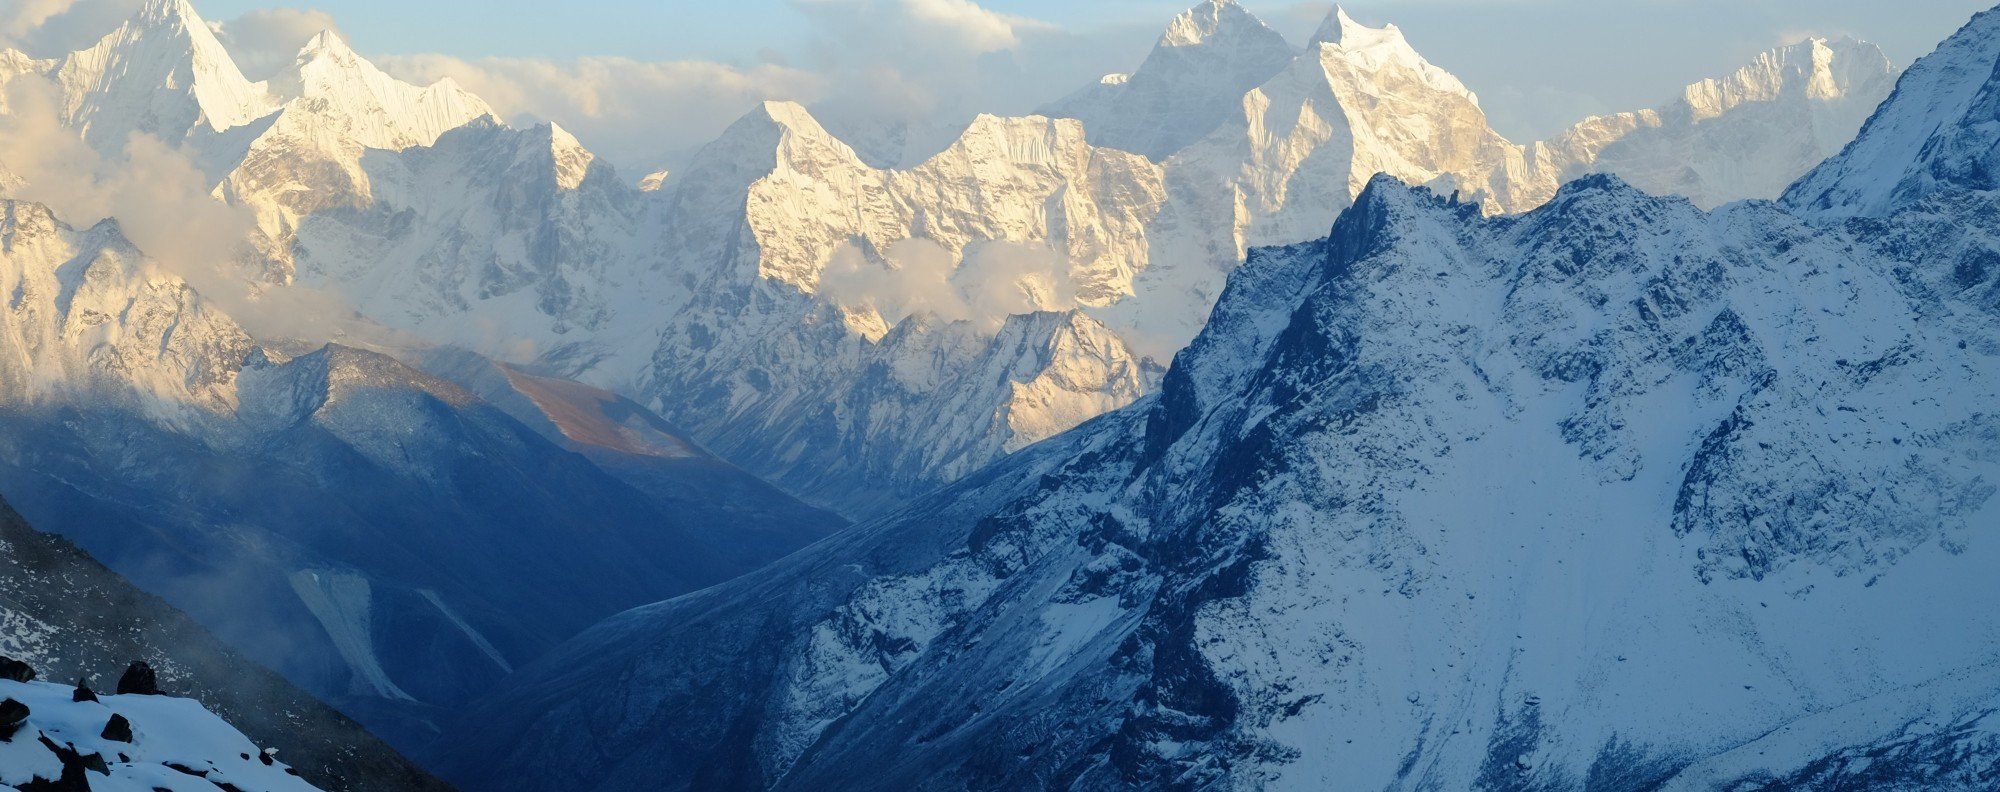 Nepal is sandwiched between China and India. Photo: Harmony To